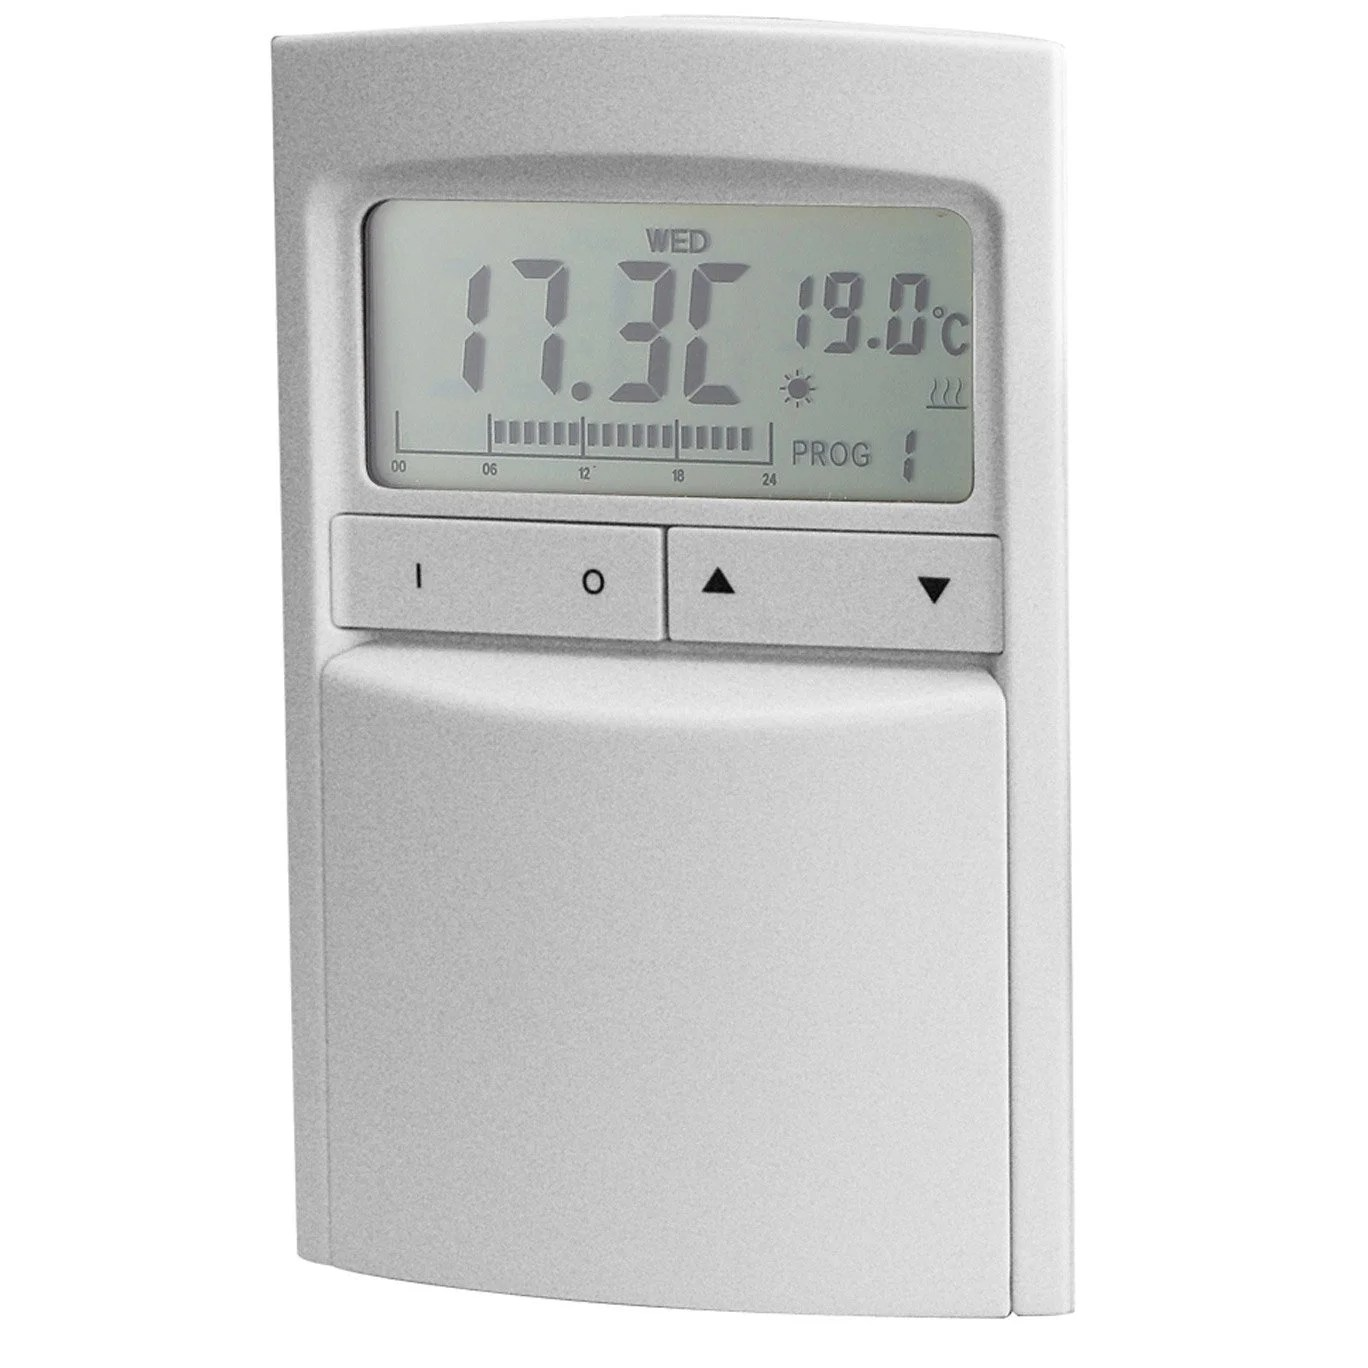 Thermostat Chaudiere Gaz Leroy Merlin Thermostat Programmable Filaire Celcia Crono 912 Leroy